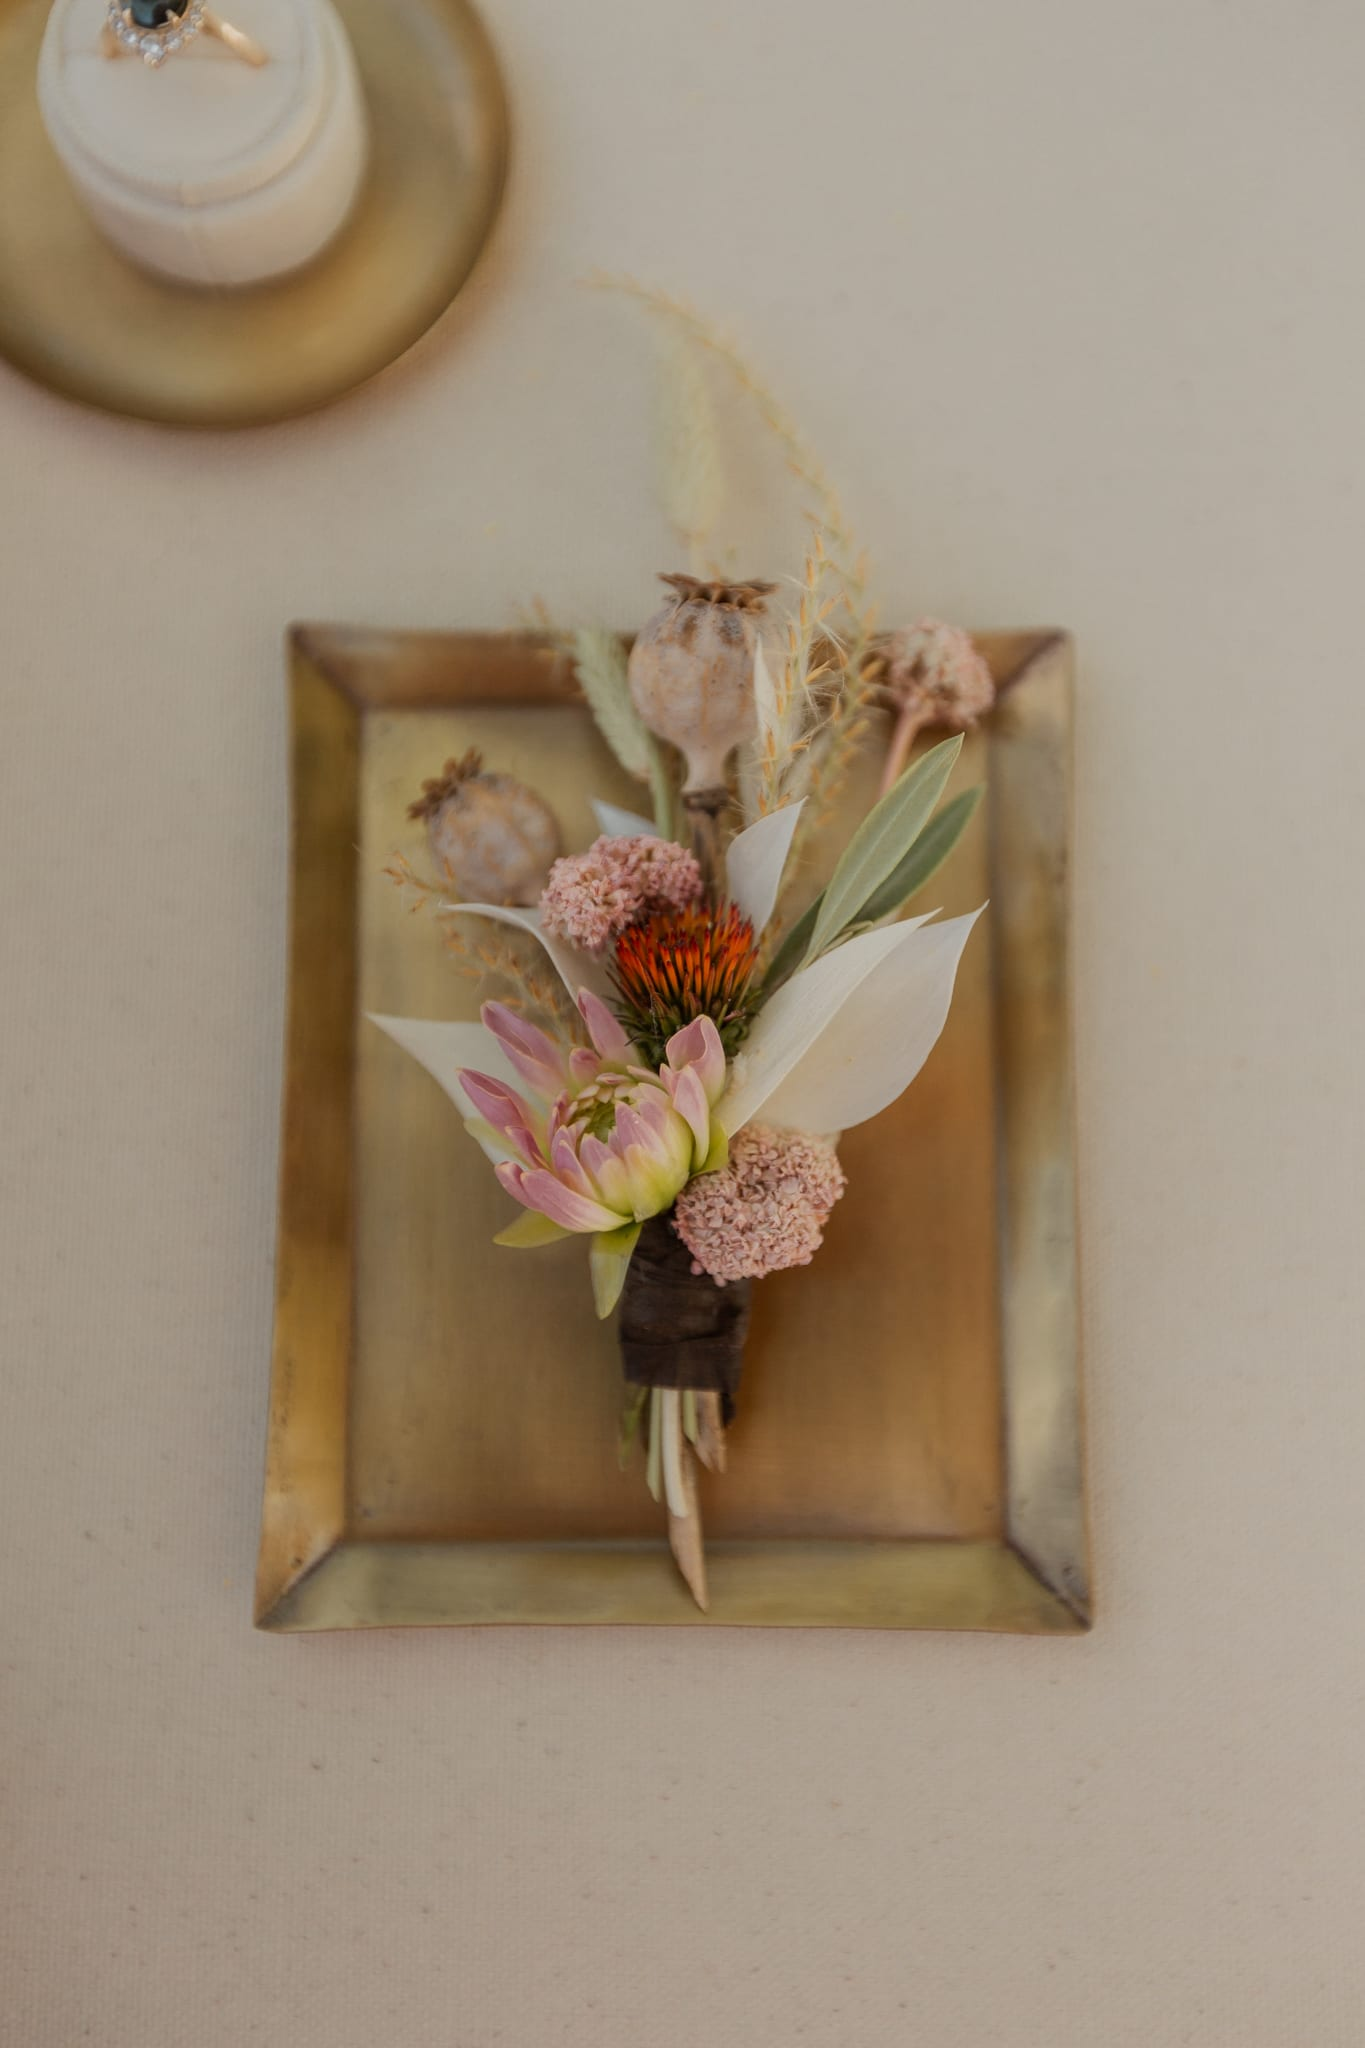 Tyler's blush, white and green boutonniere rests atop a rectangular gold plate.